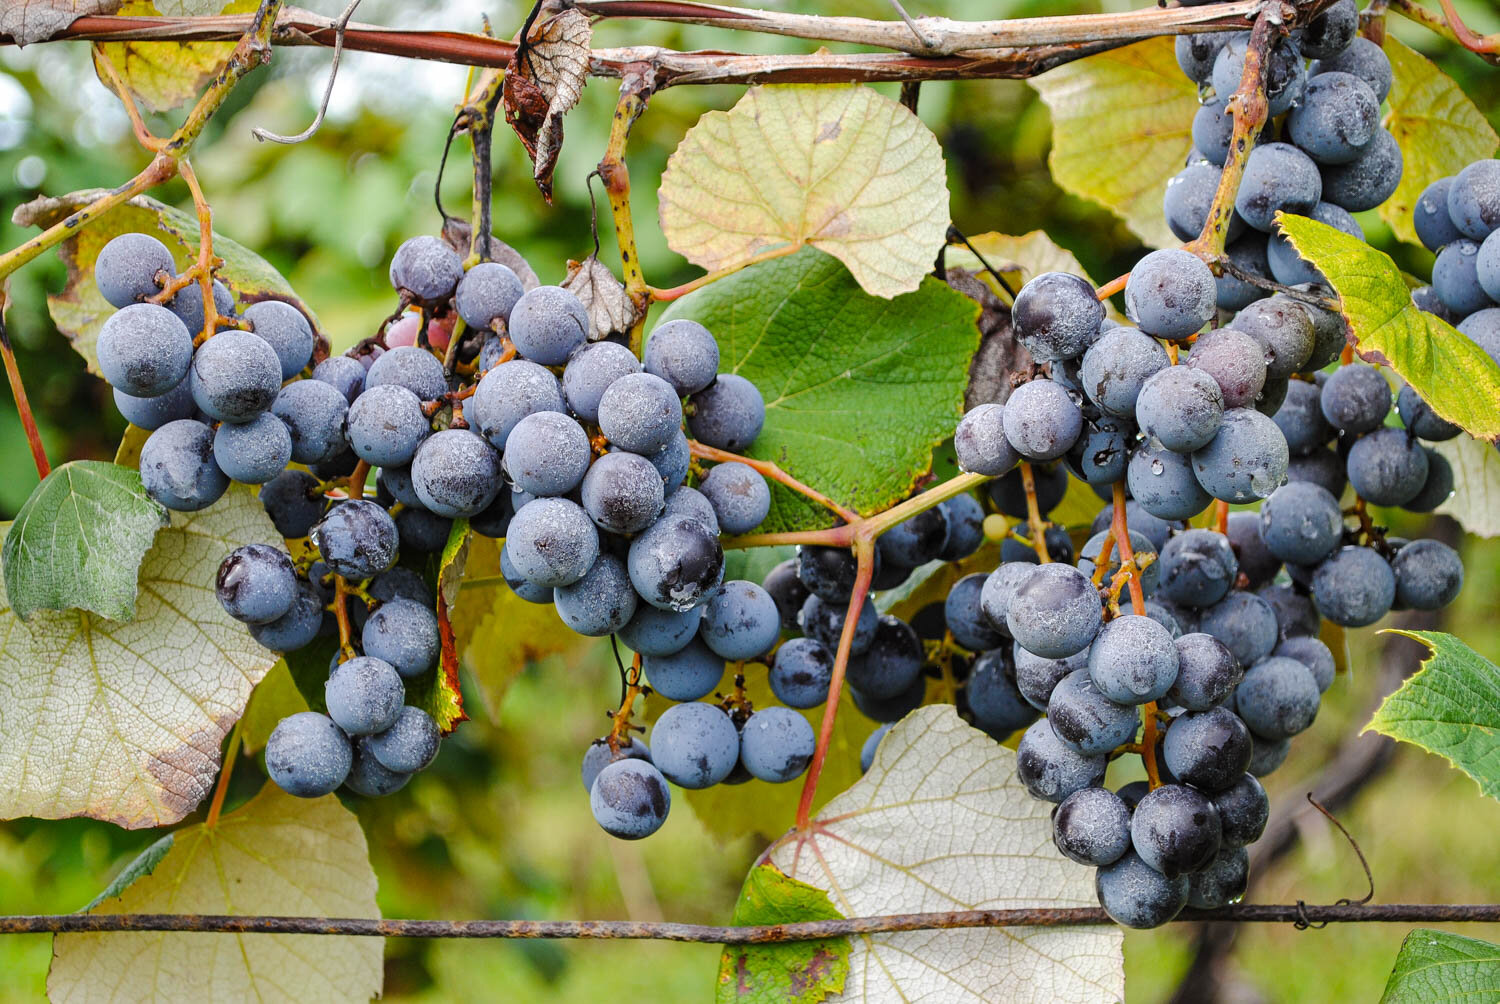 One of my favorite photos from the weekend. Don't these grapes look delicious?